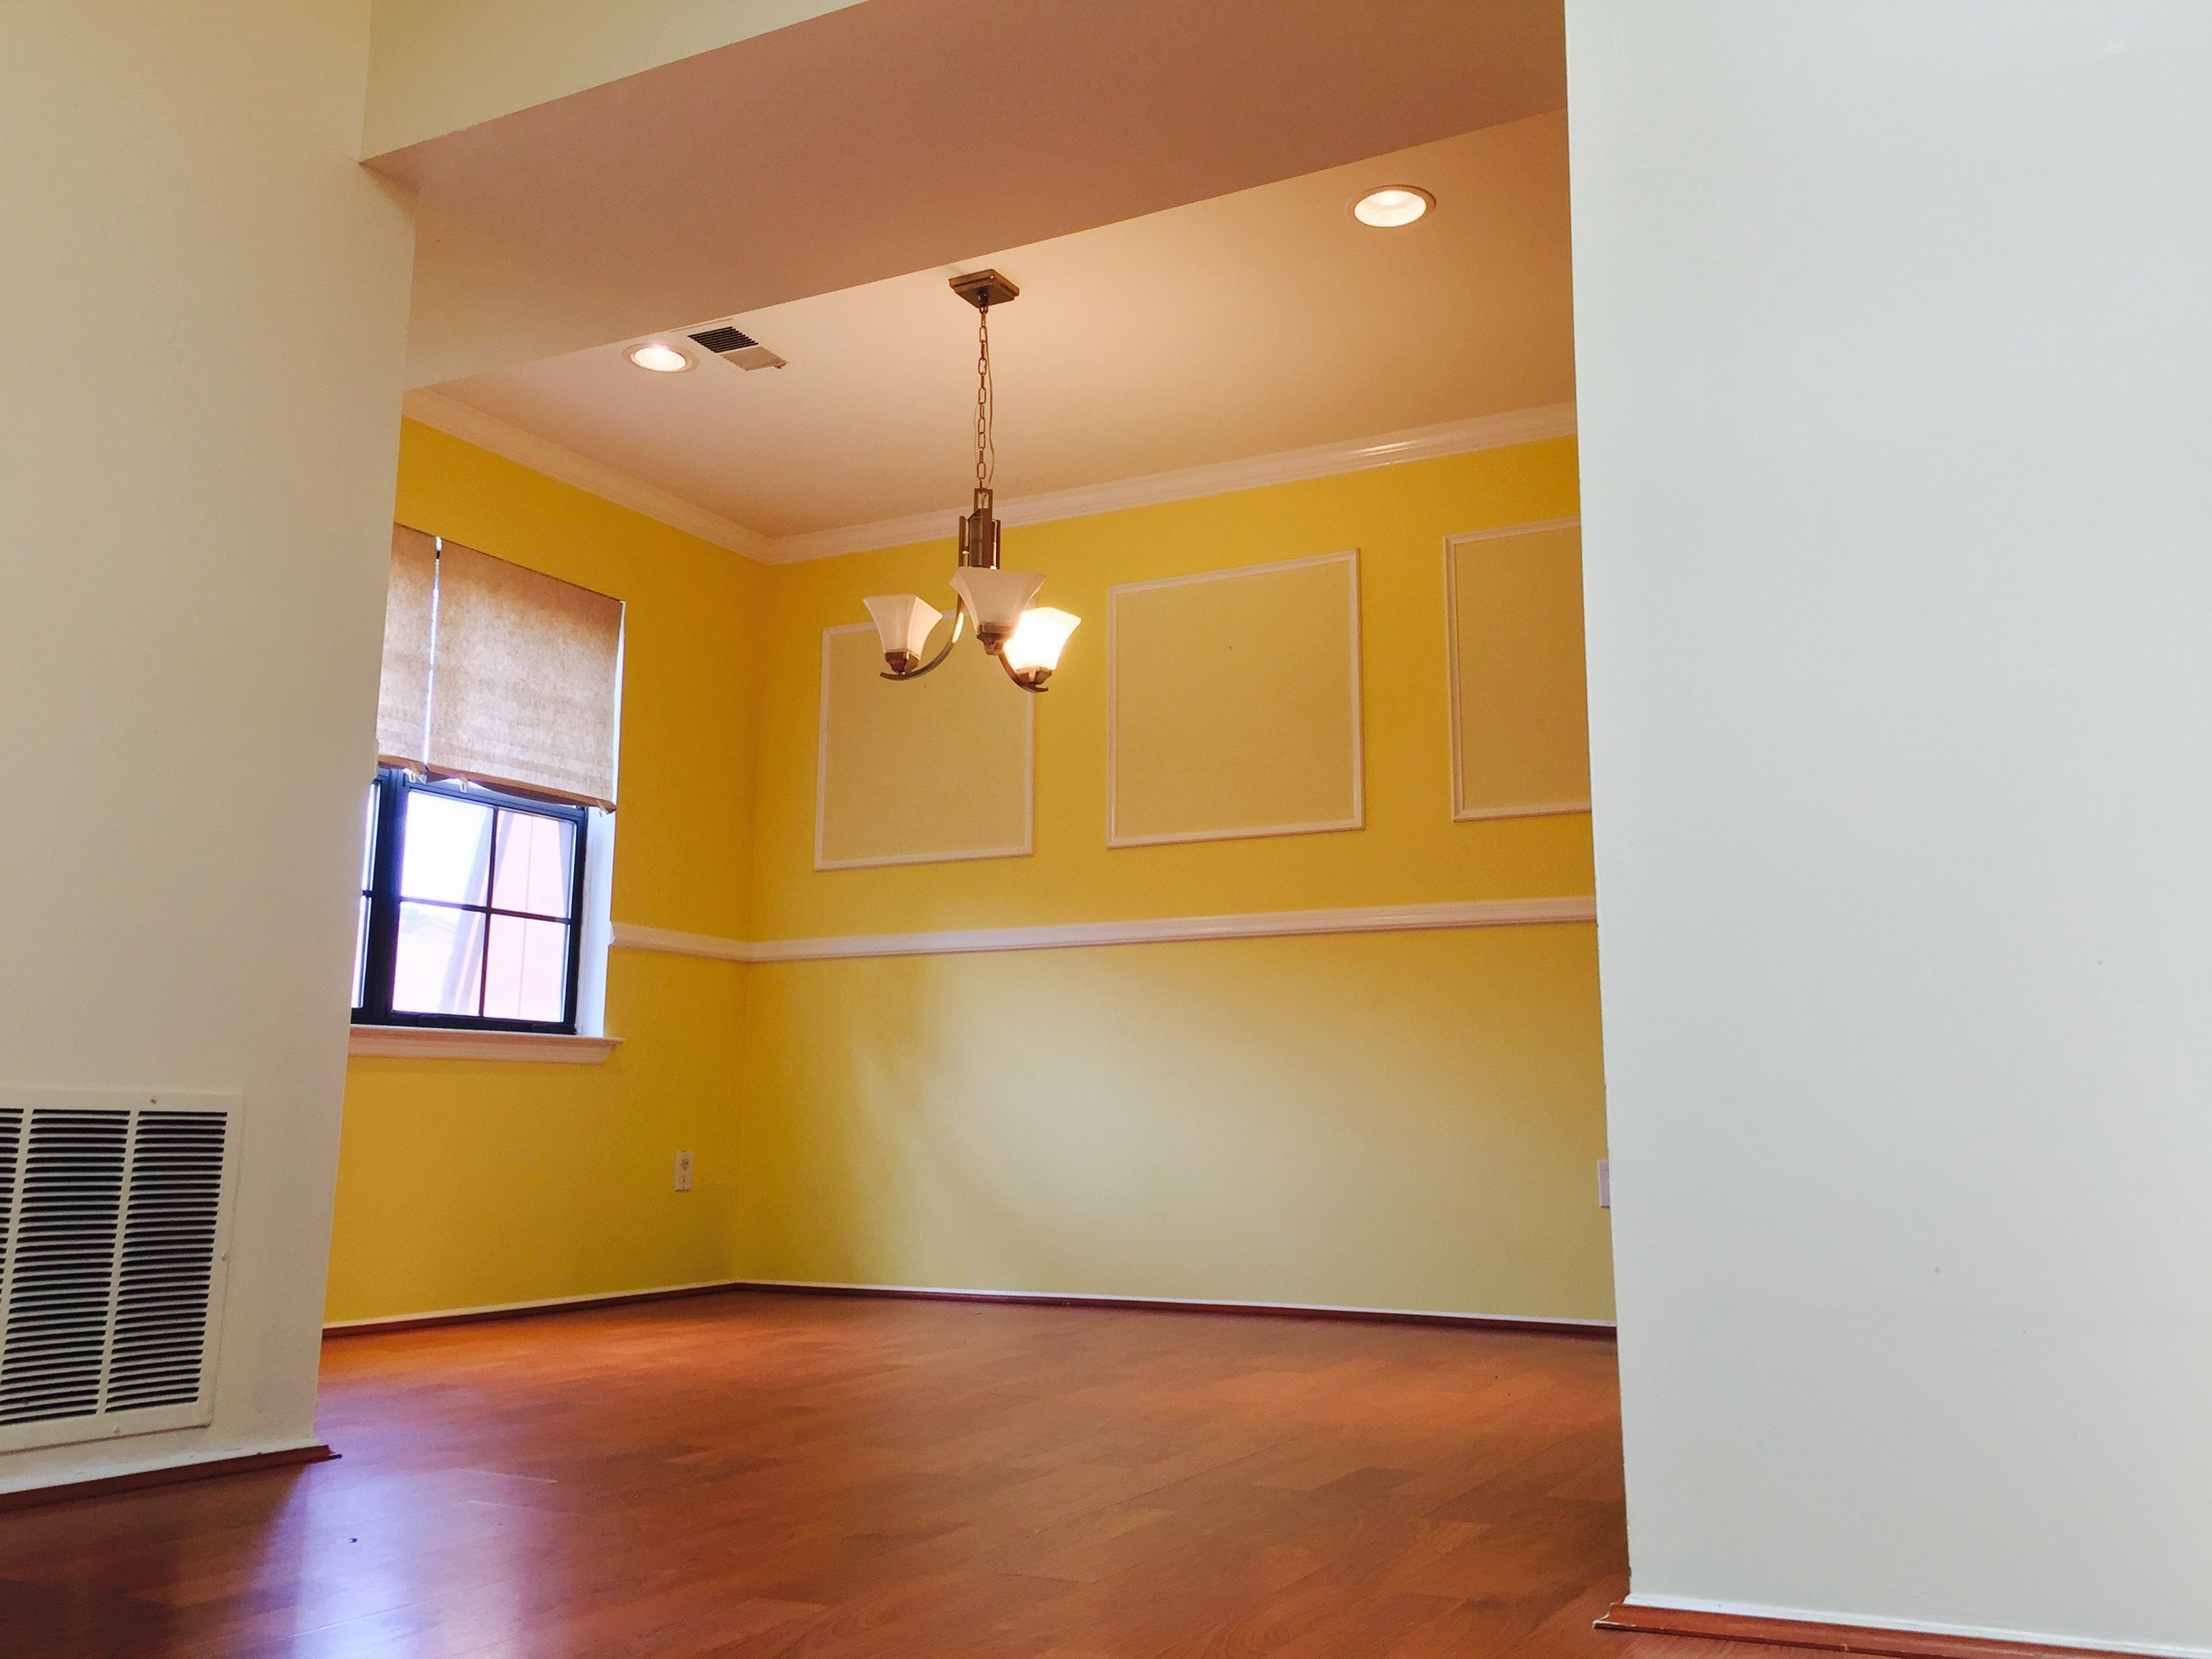 Rooms For Rent In Nj Sulekha